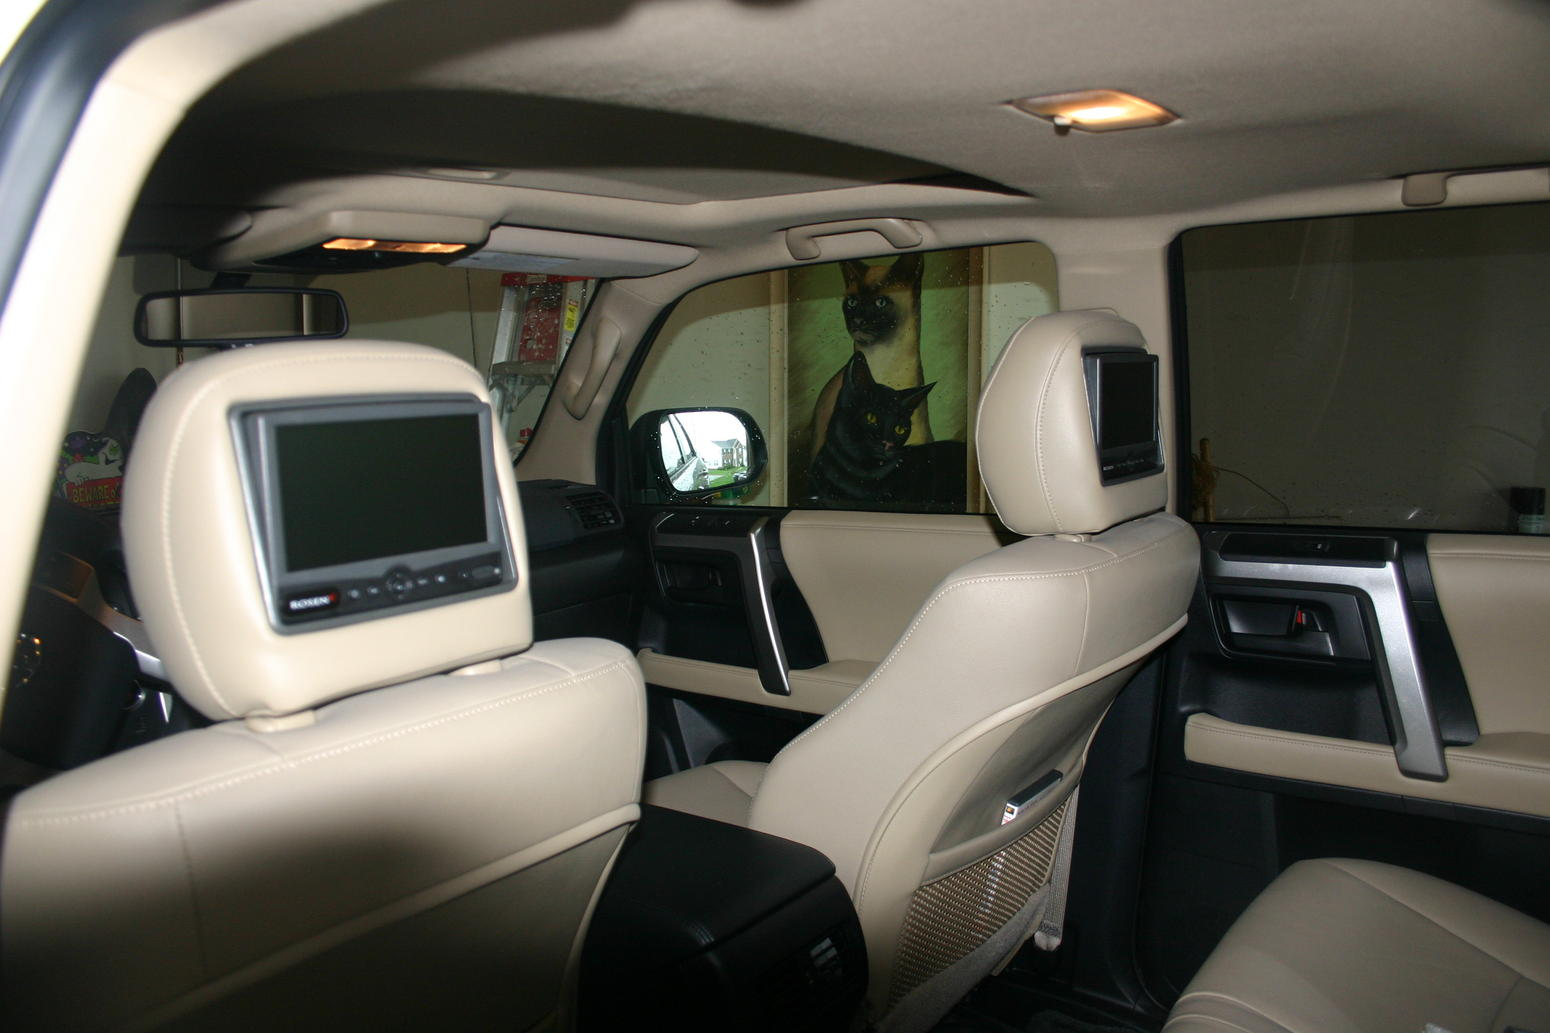 new headrest dvd page 2 toyota 4runner forum largest. Black Bedroom Furniture Sets. Home Design Ideas